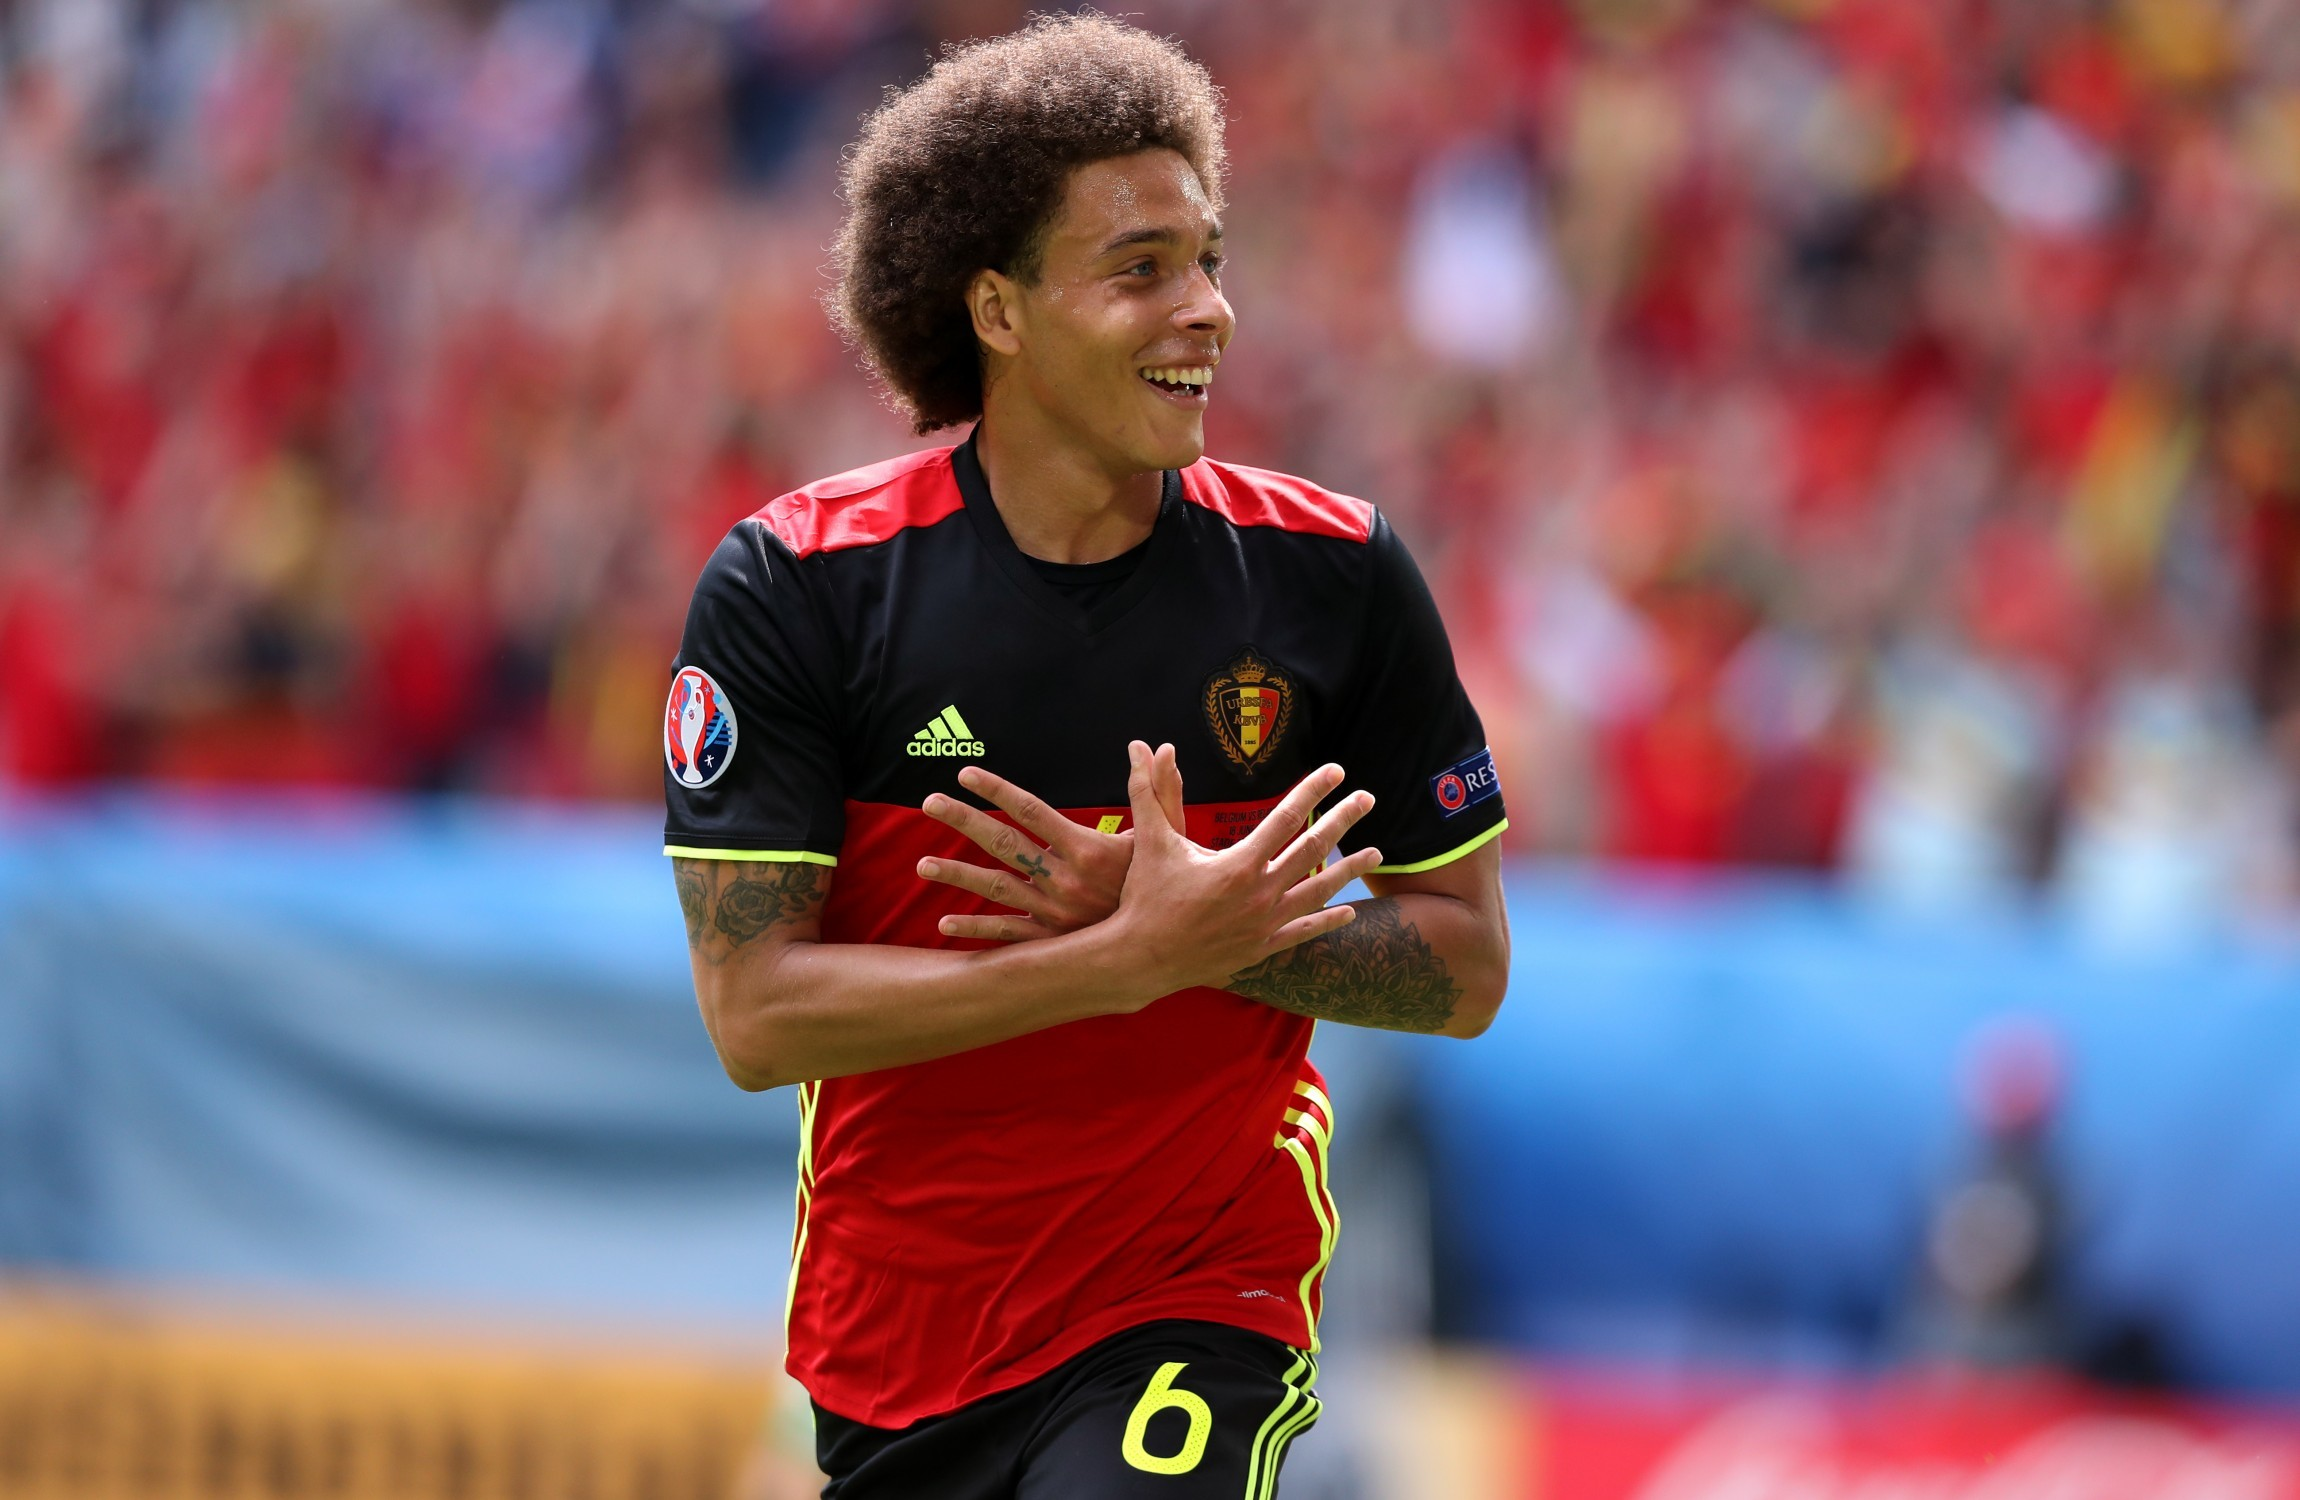 Money talks Axel Witsel signs €20 million a year deal with